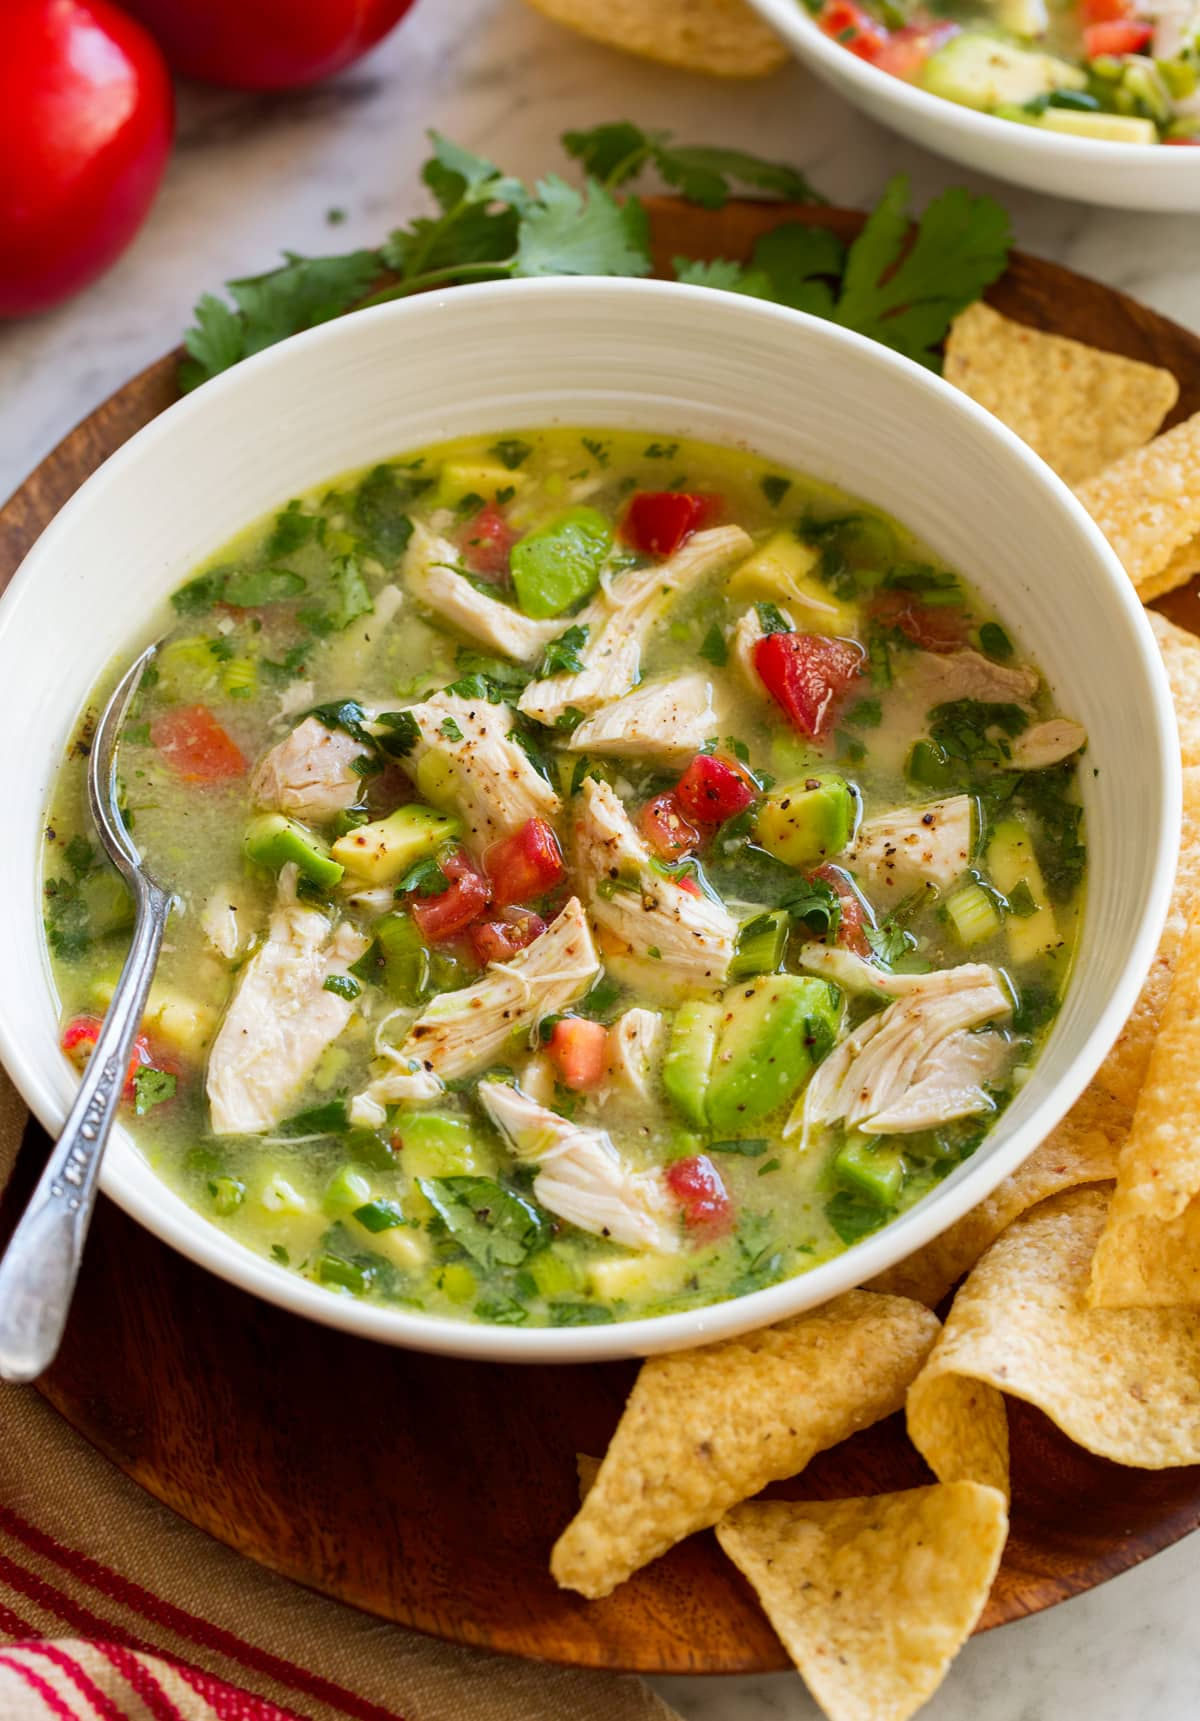 Single serving of chicken avocado soup in a bowl shown from the side.